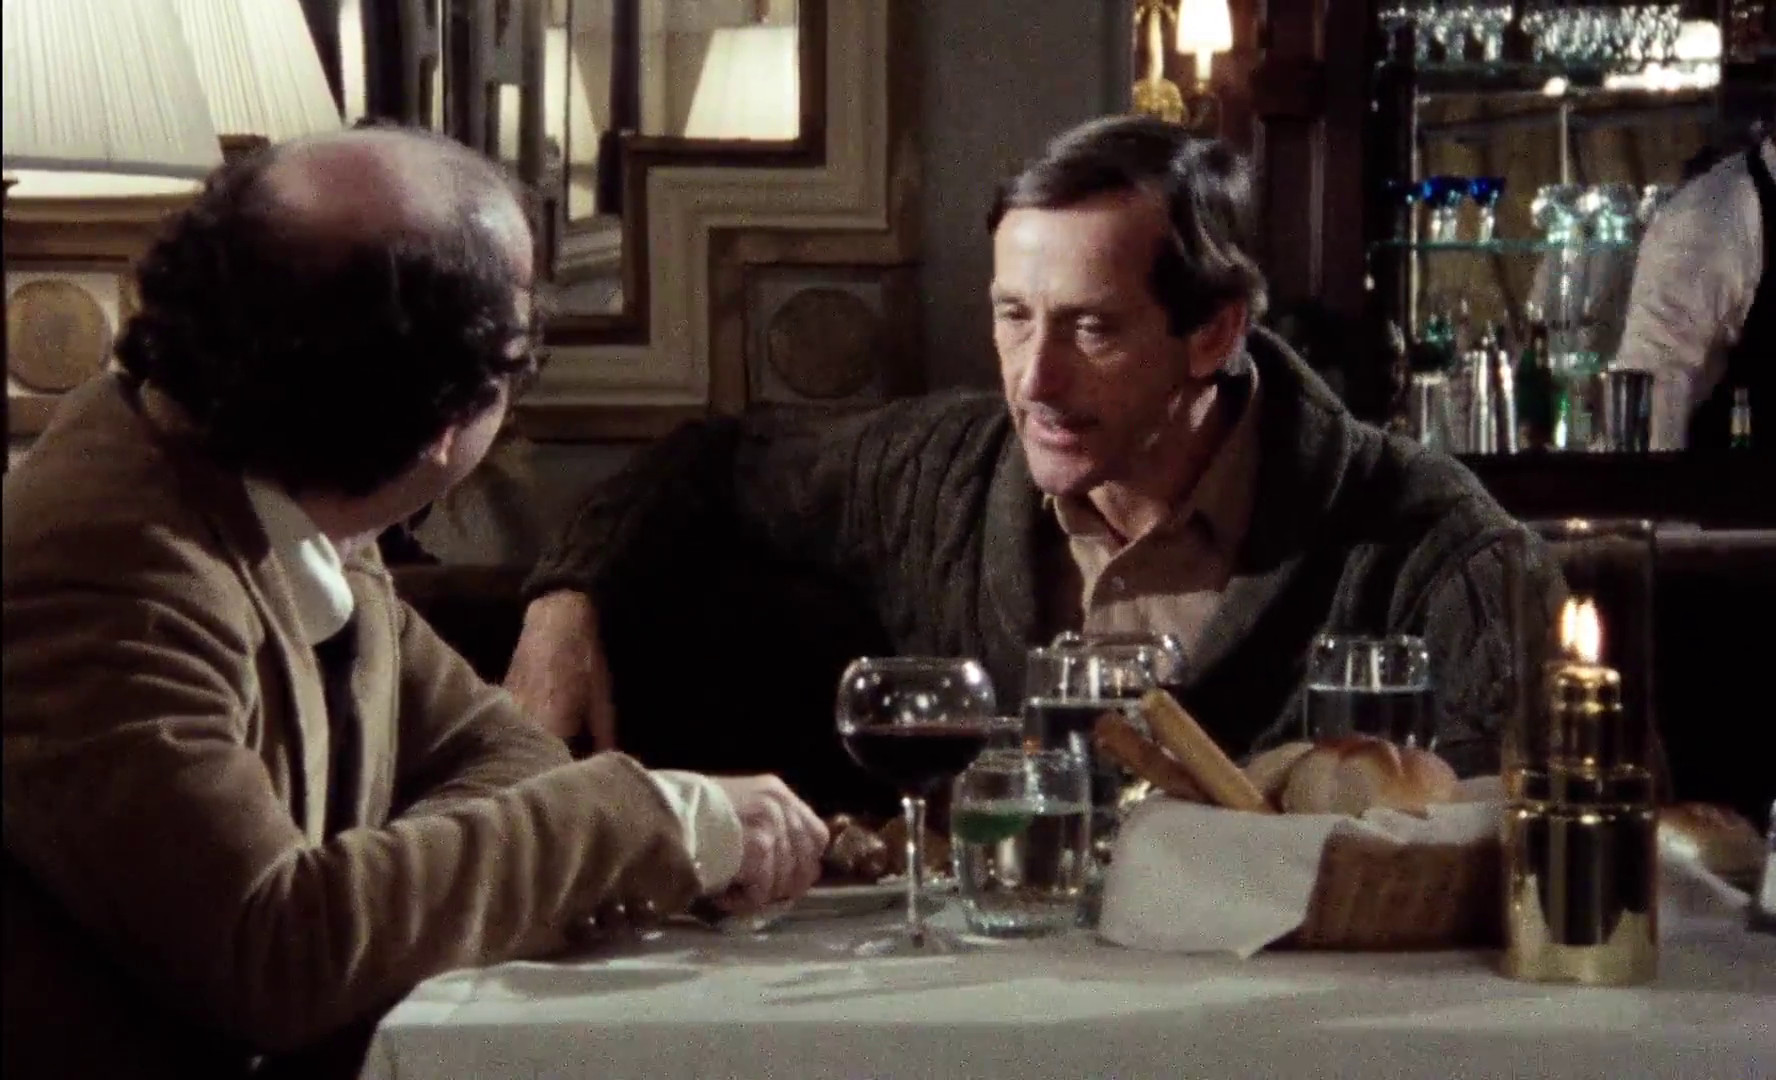 My Dinner With Andre  Download My Dinner with Andre 1981 YIFY Torrent for